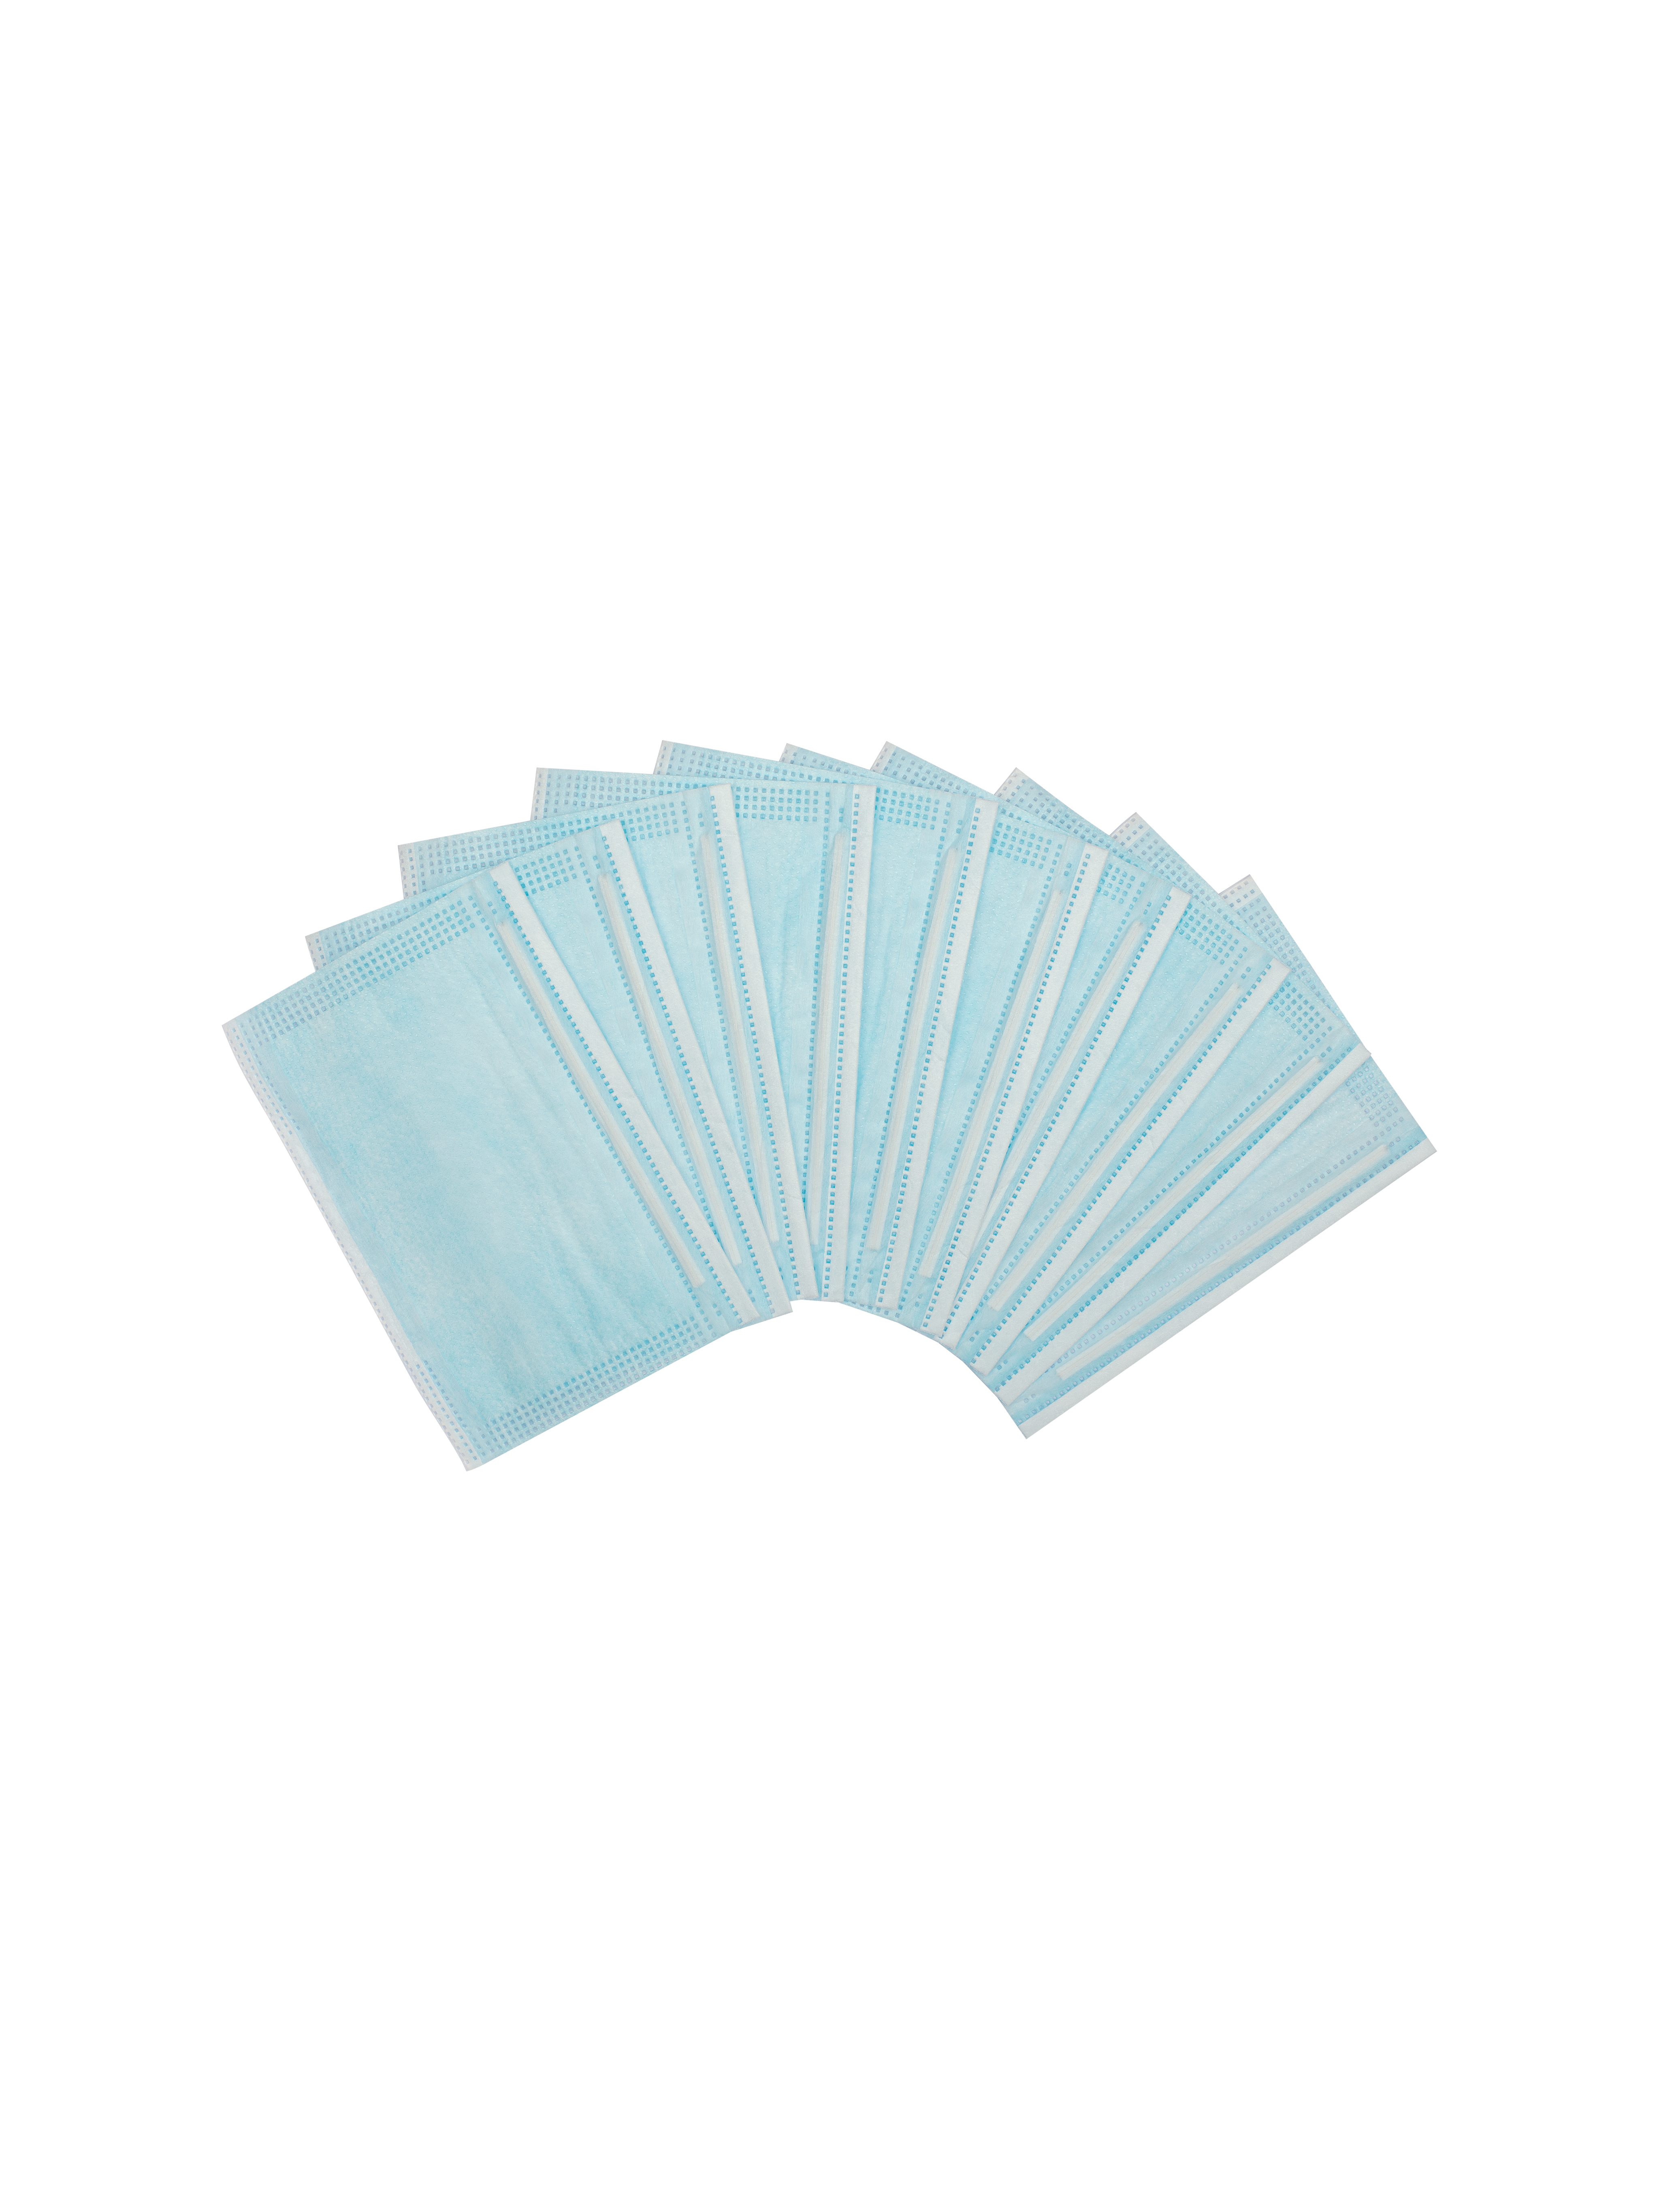 Maskfilter (Pack of 10) product image